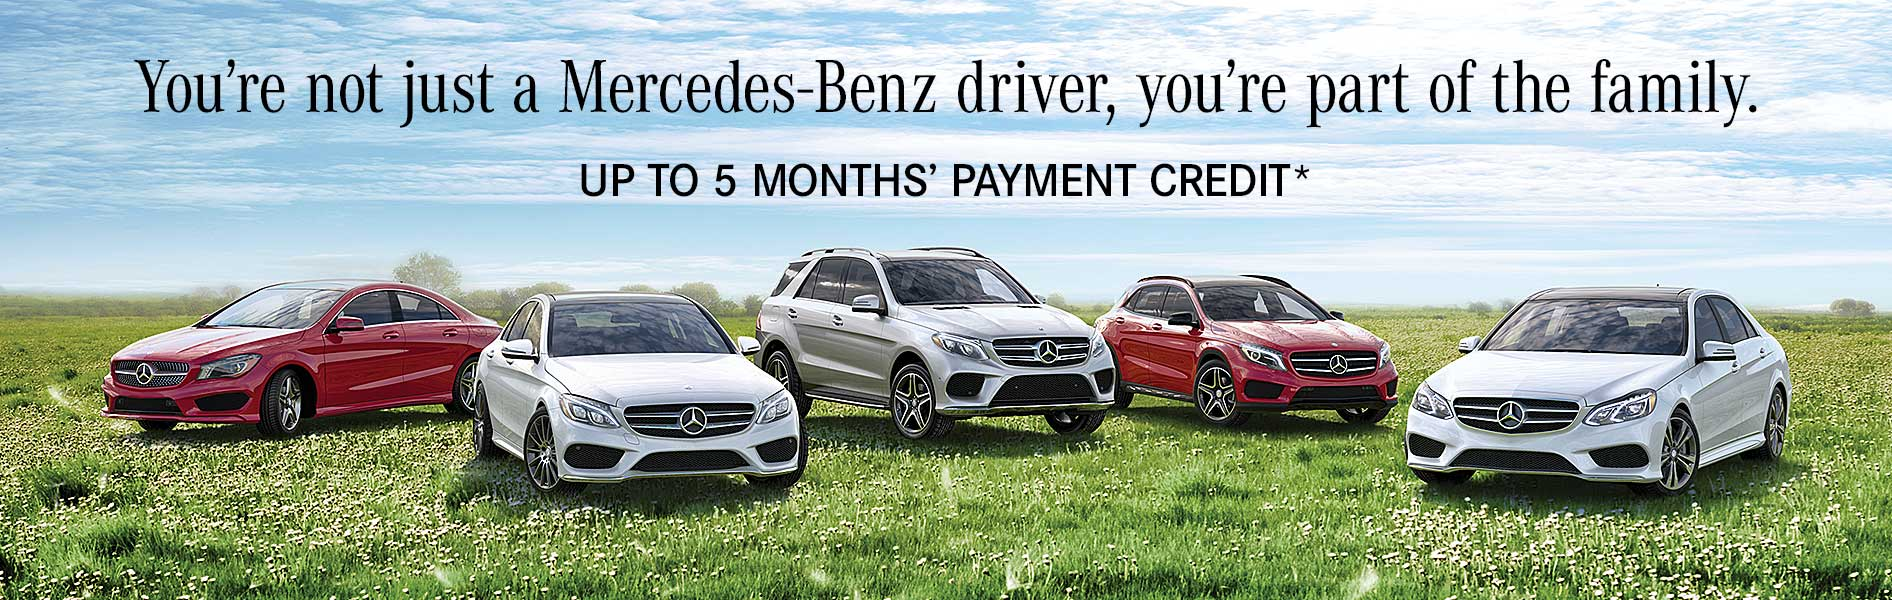 Mercedes-Benz Loyalty Accelerator Program